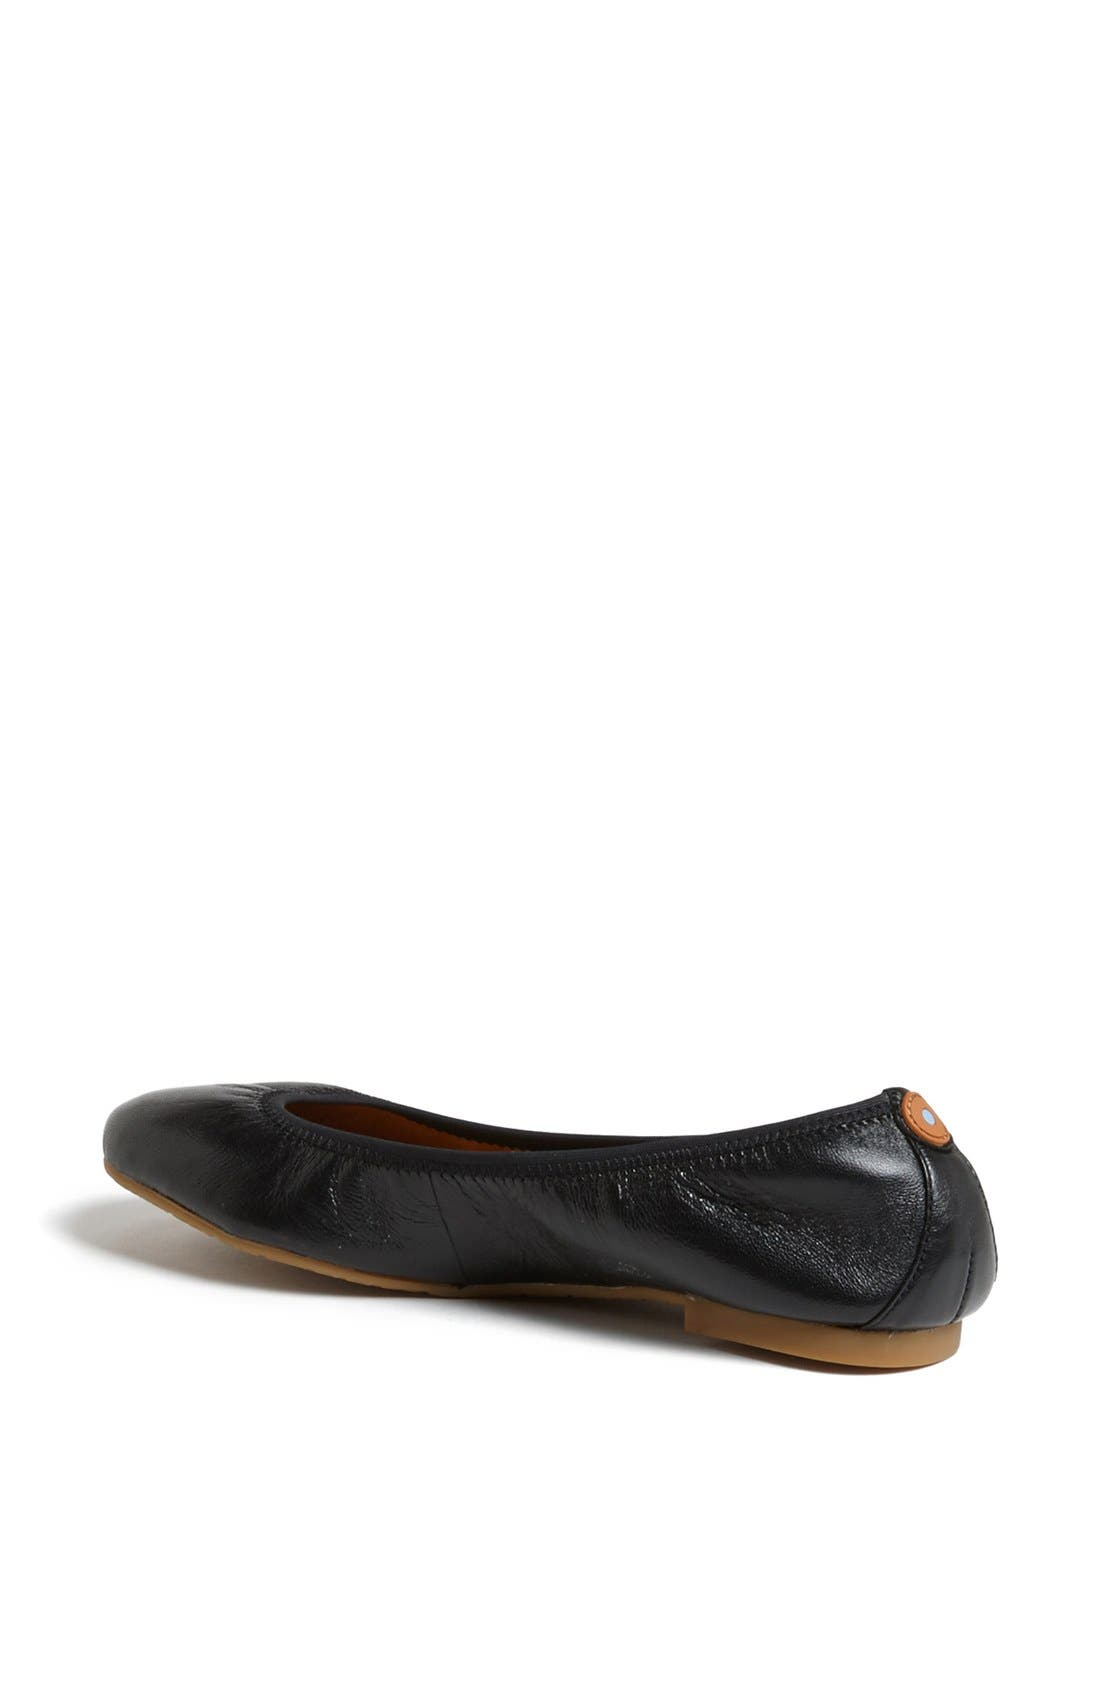 Alternate Image 2  - Juil 'The Flat' Earthing Leather Ballet Flat